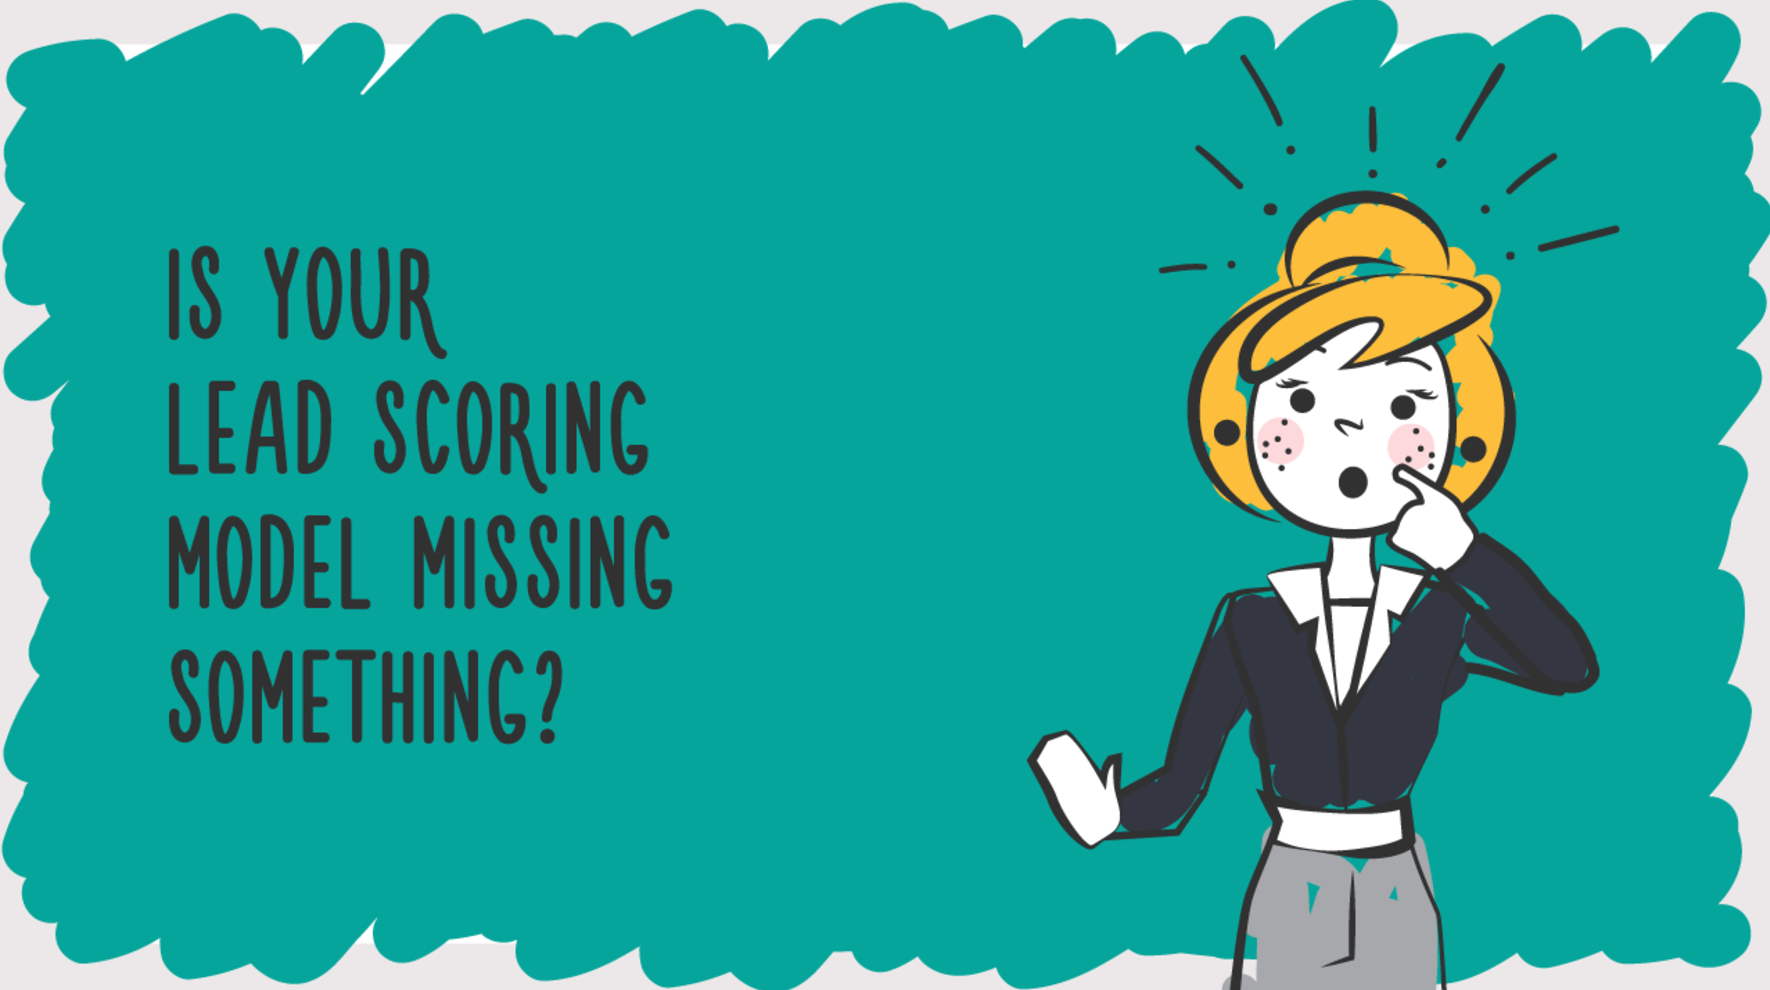 Is your lead scoring model missing something?